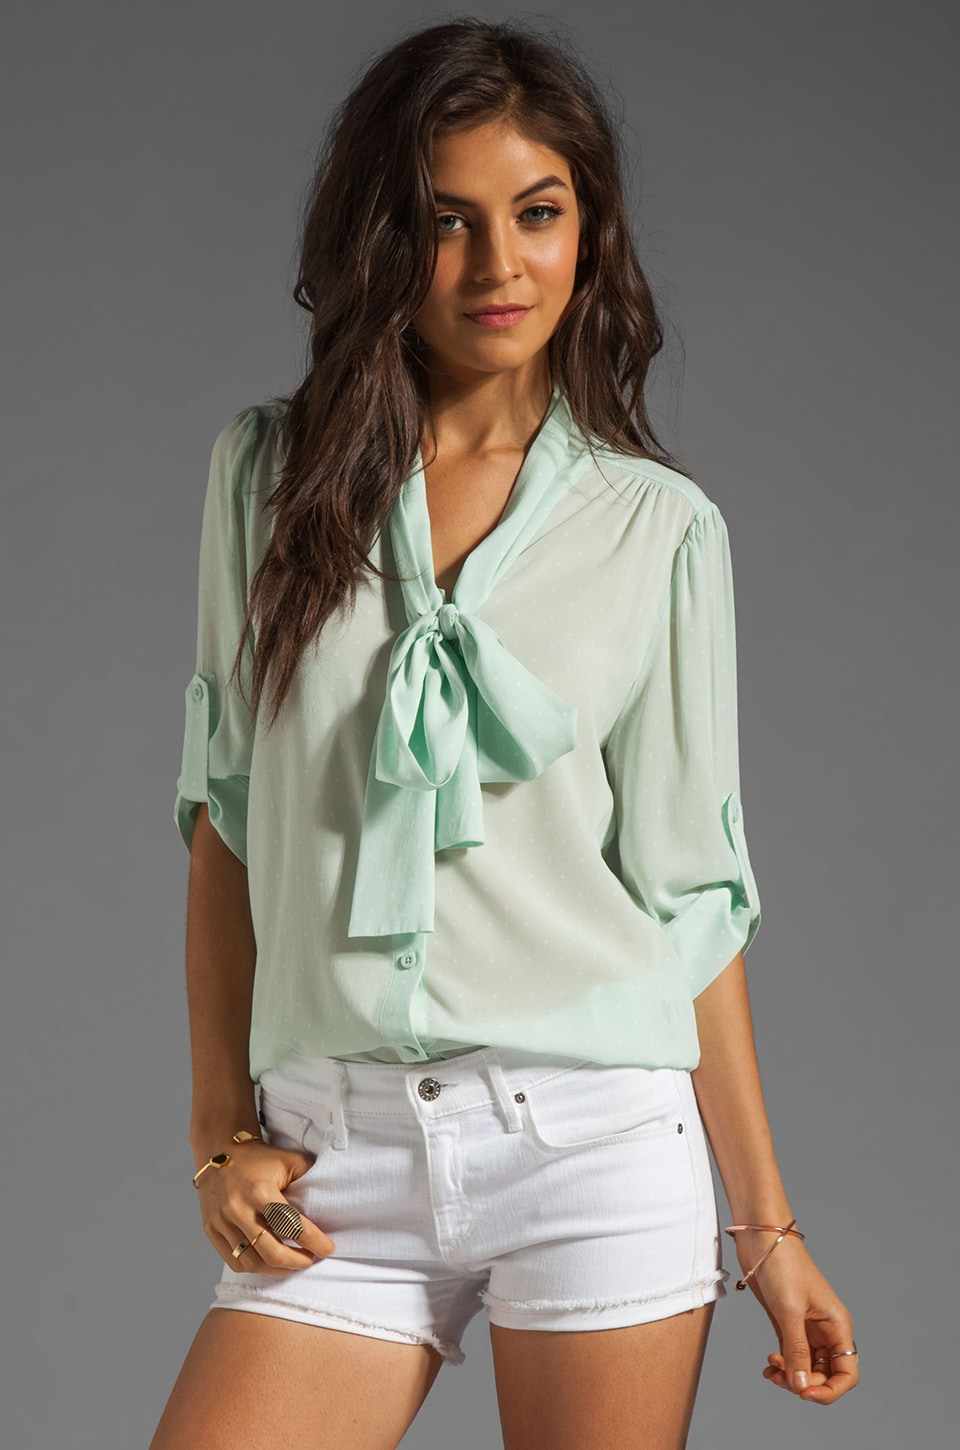 Alice + Olivia Arie Tied Collar Blouse in Pastel Dot/Aqua